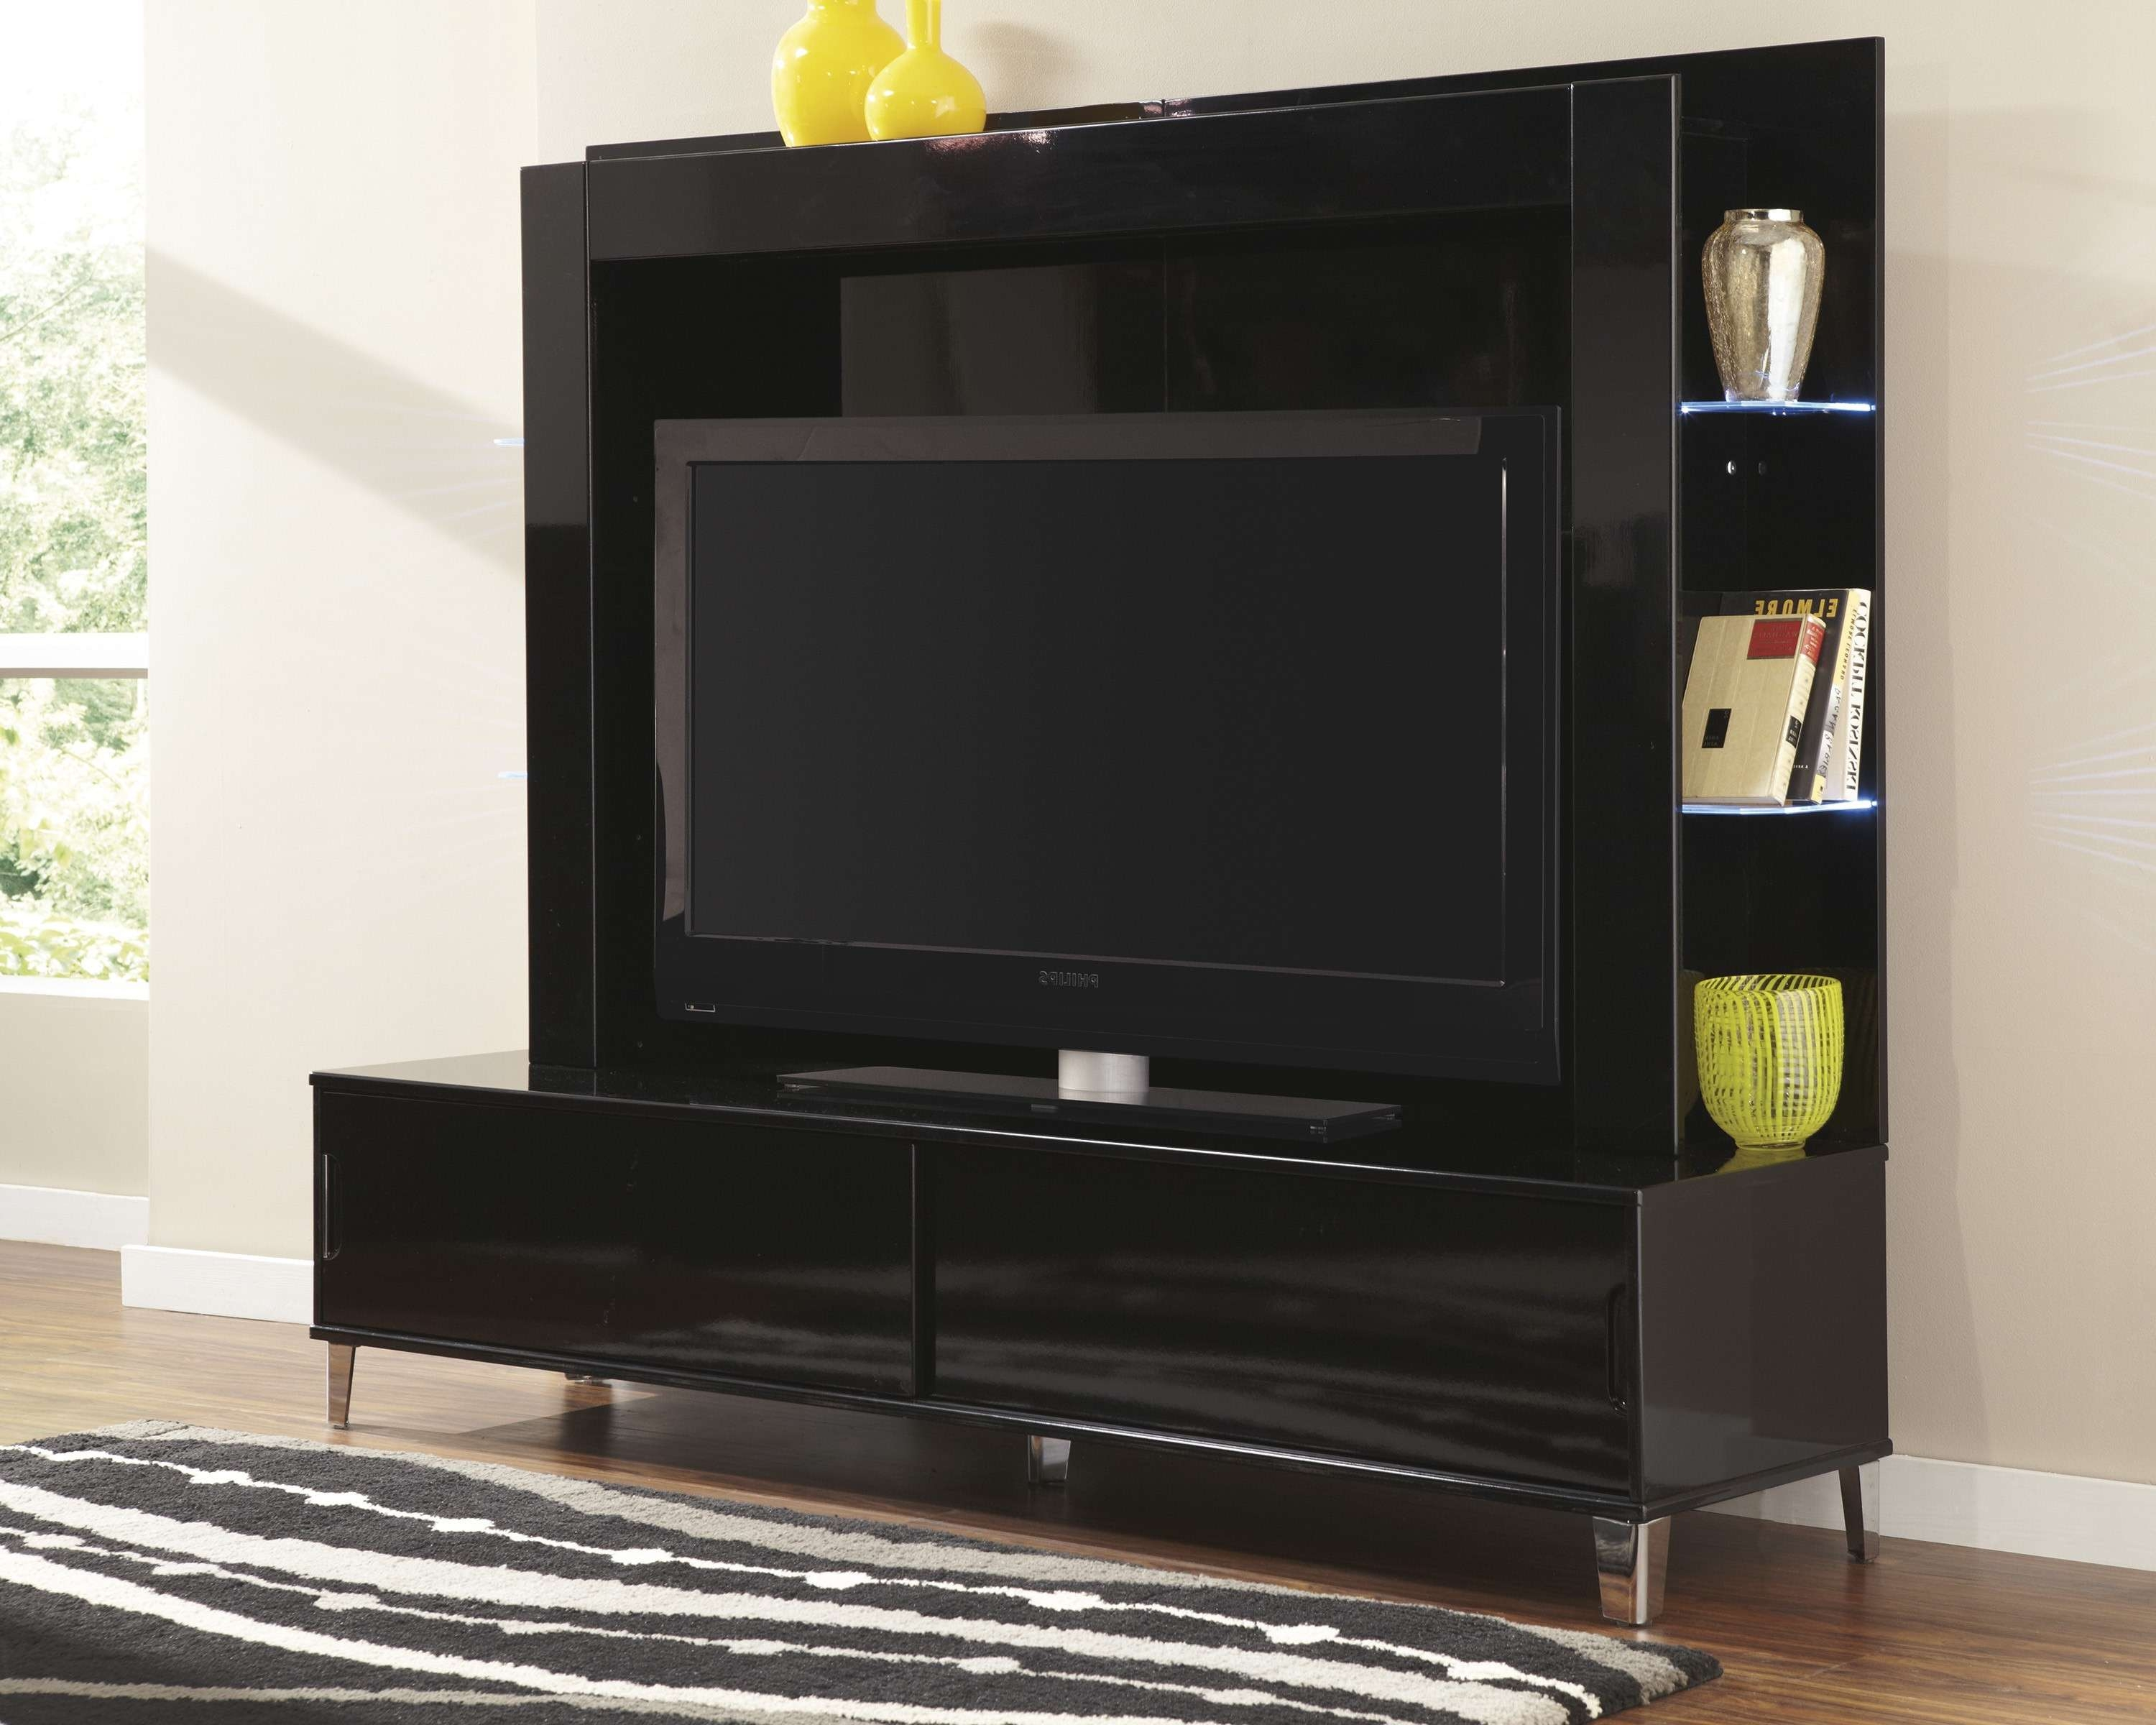 Double Bowl Carpet In Flat Screens Screen Tv Mount Stand Cream With Contemporary Tv Stands For Flat Screens (View 6 of 20)